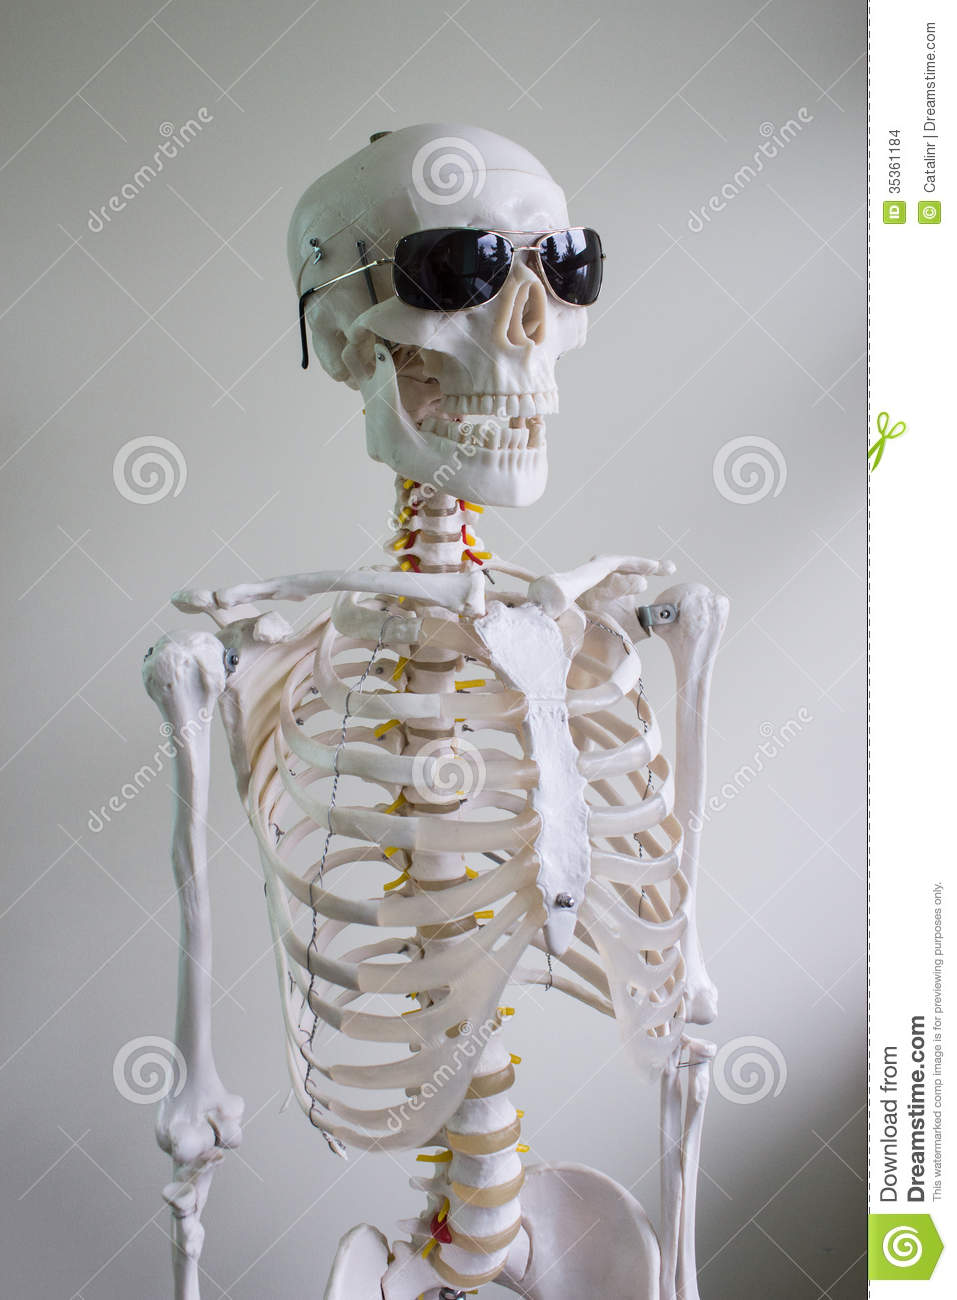 Cool spooky skeleton model wearing sunglasses on white background.